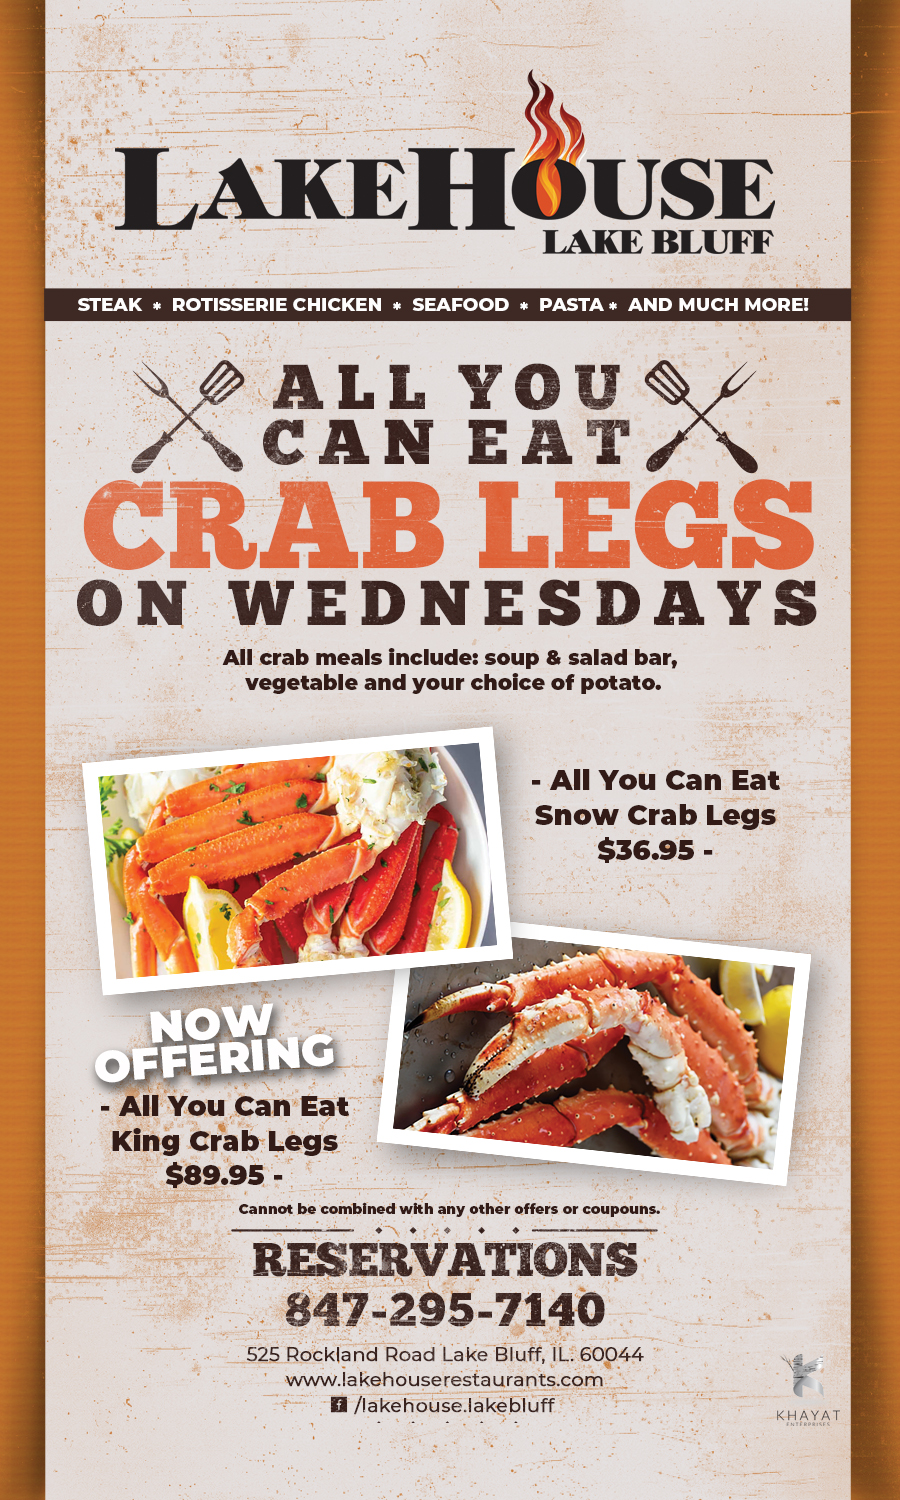 All You Can Eat Crab Legs On Wednesdays at LakeHouse Lake Bluff